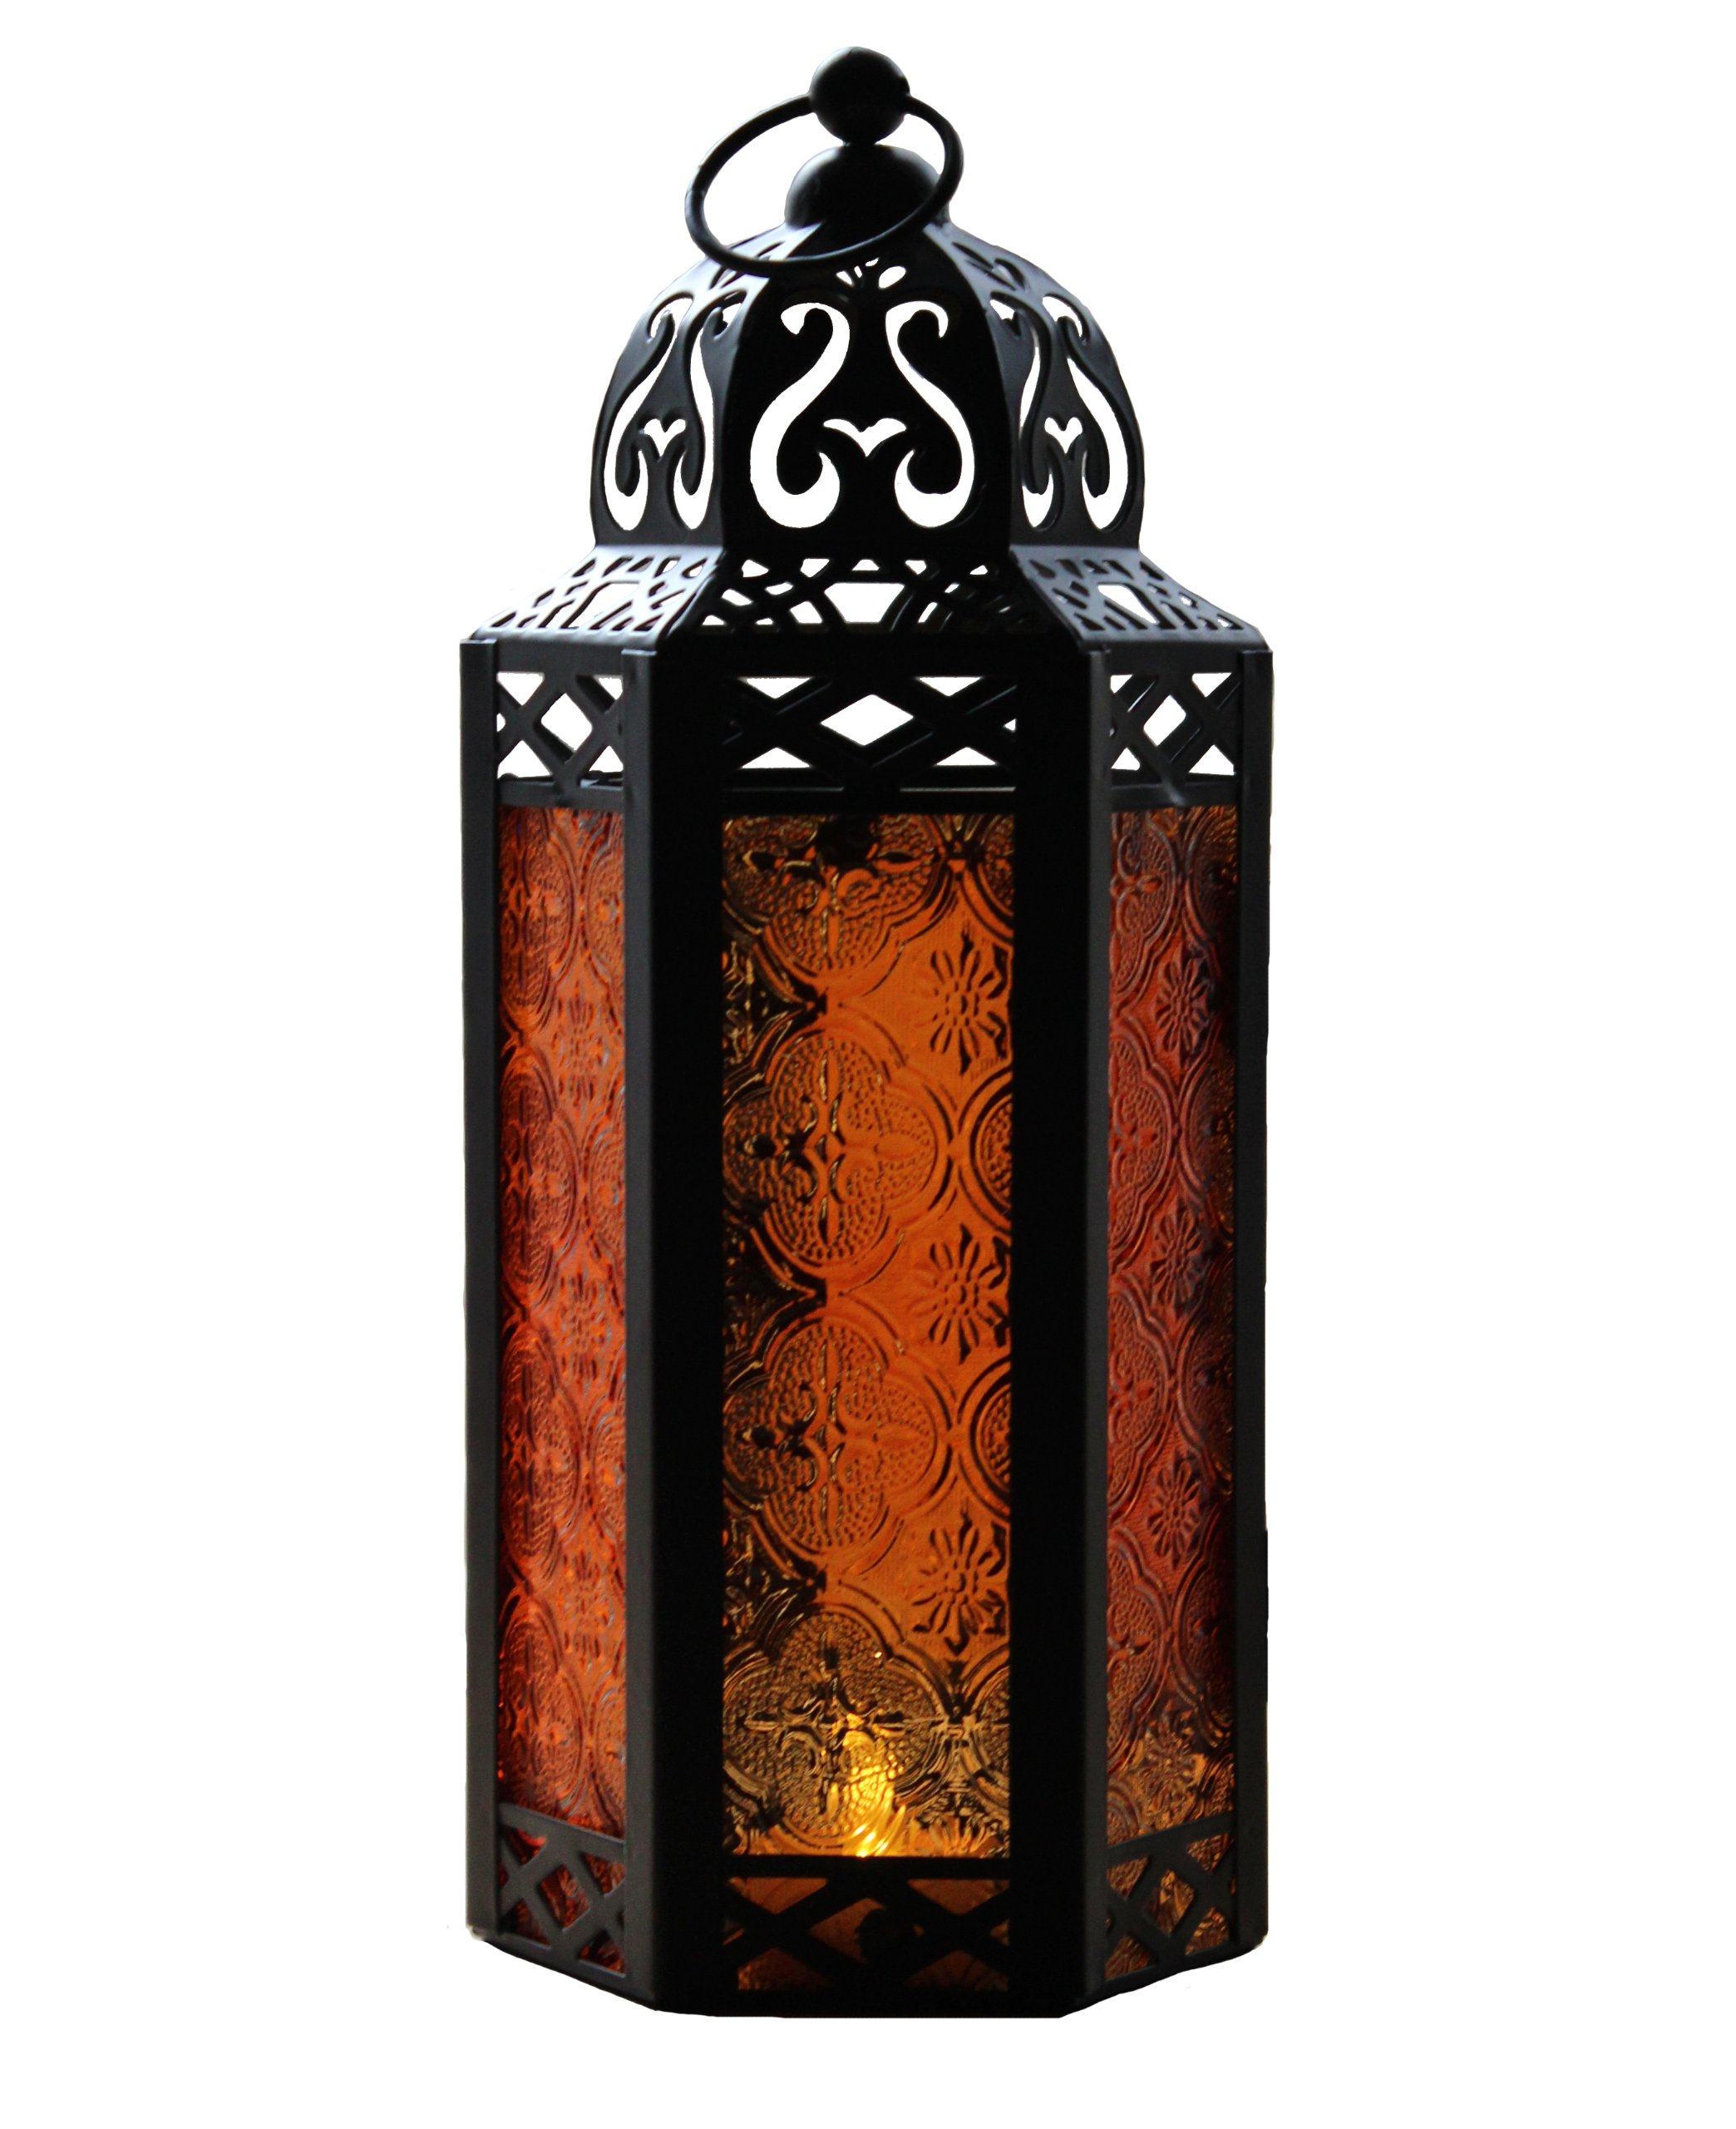 Amber Glass Moroccan Style Candle Lantern - Great for Patio, Indoors/Outdoors, Events, Parties and Weddings by Vela Lanterns